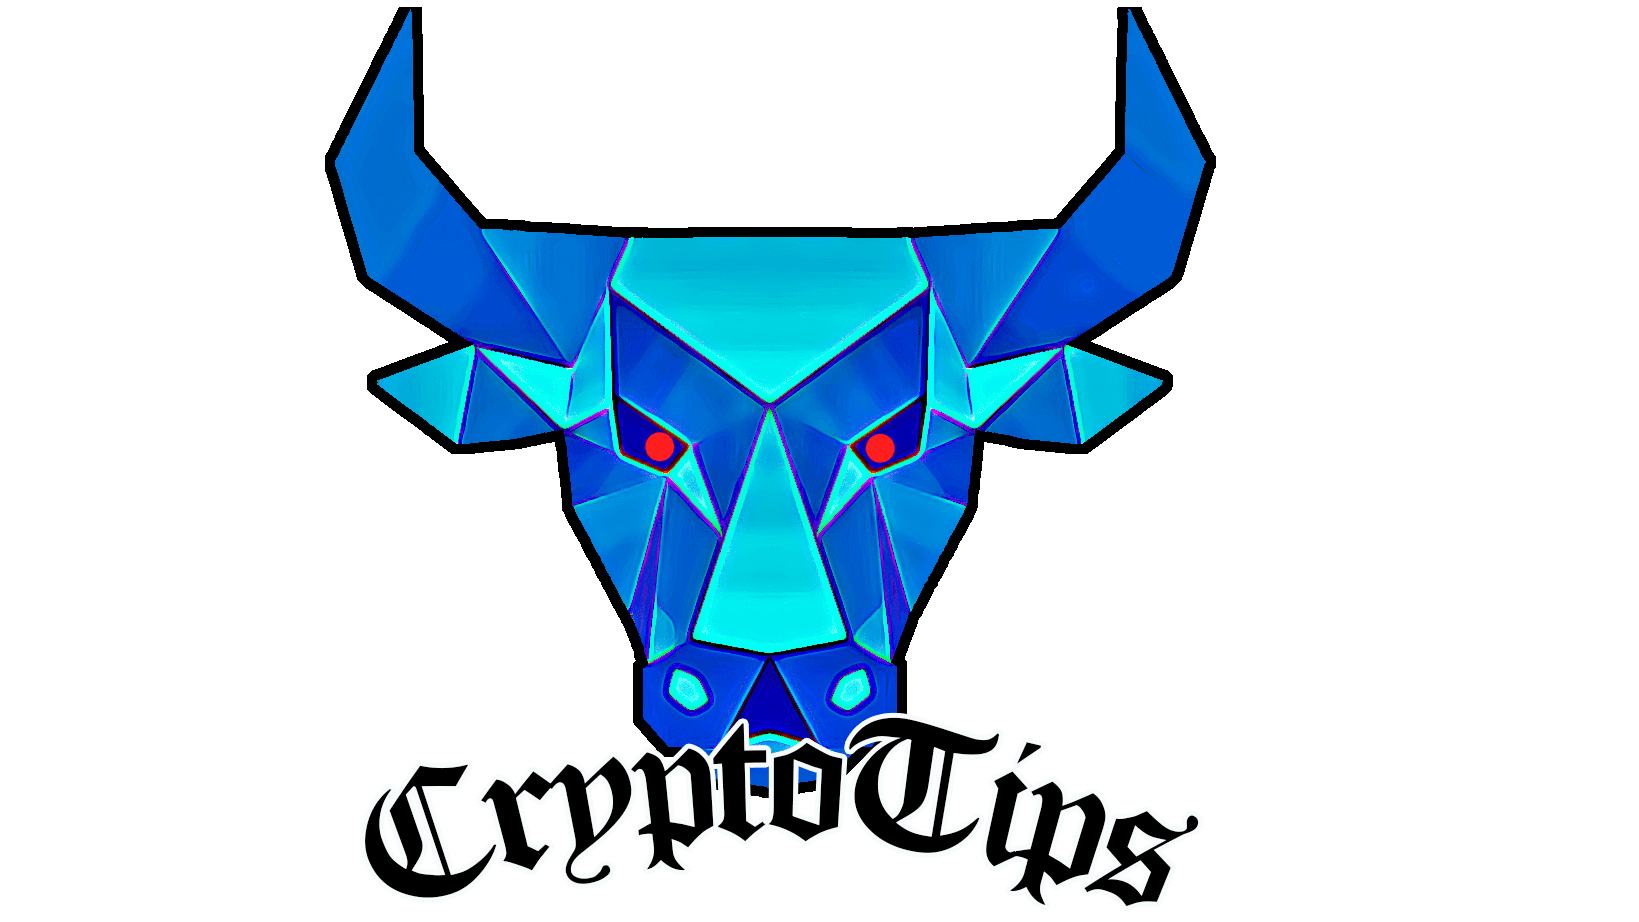 Cryptotips – Bitcoin, Cryptocurrency, Trading